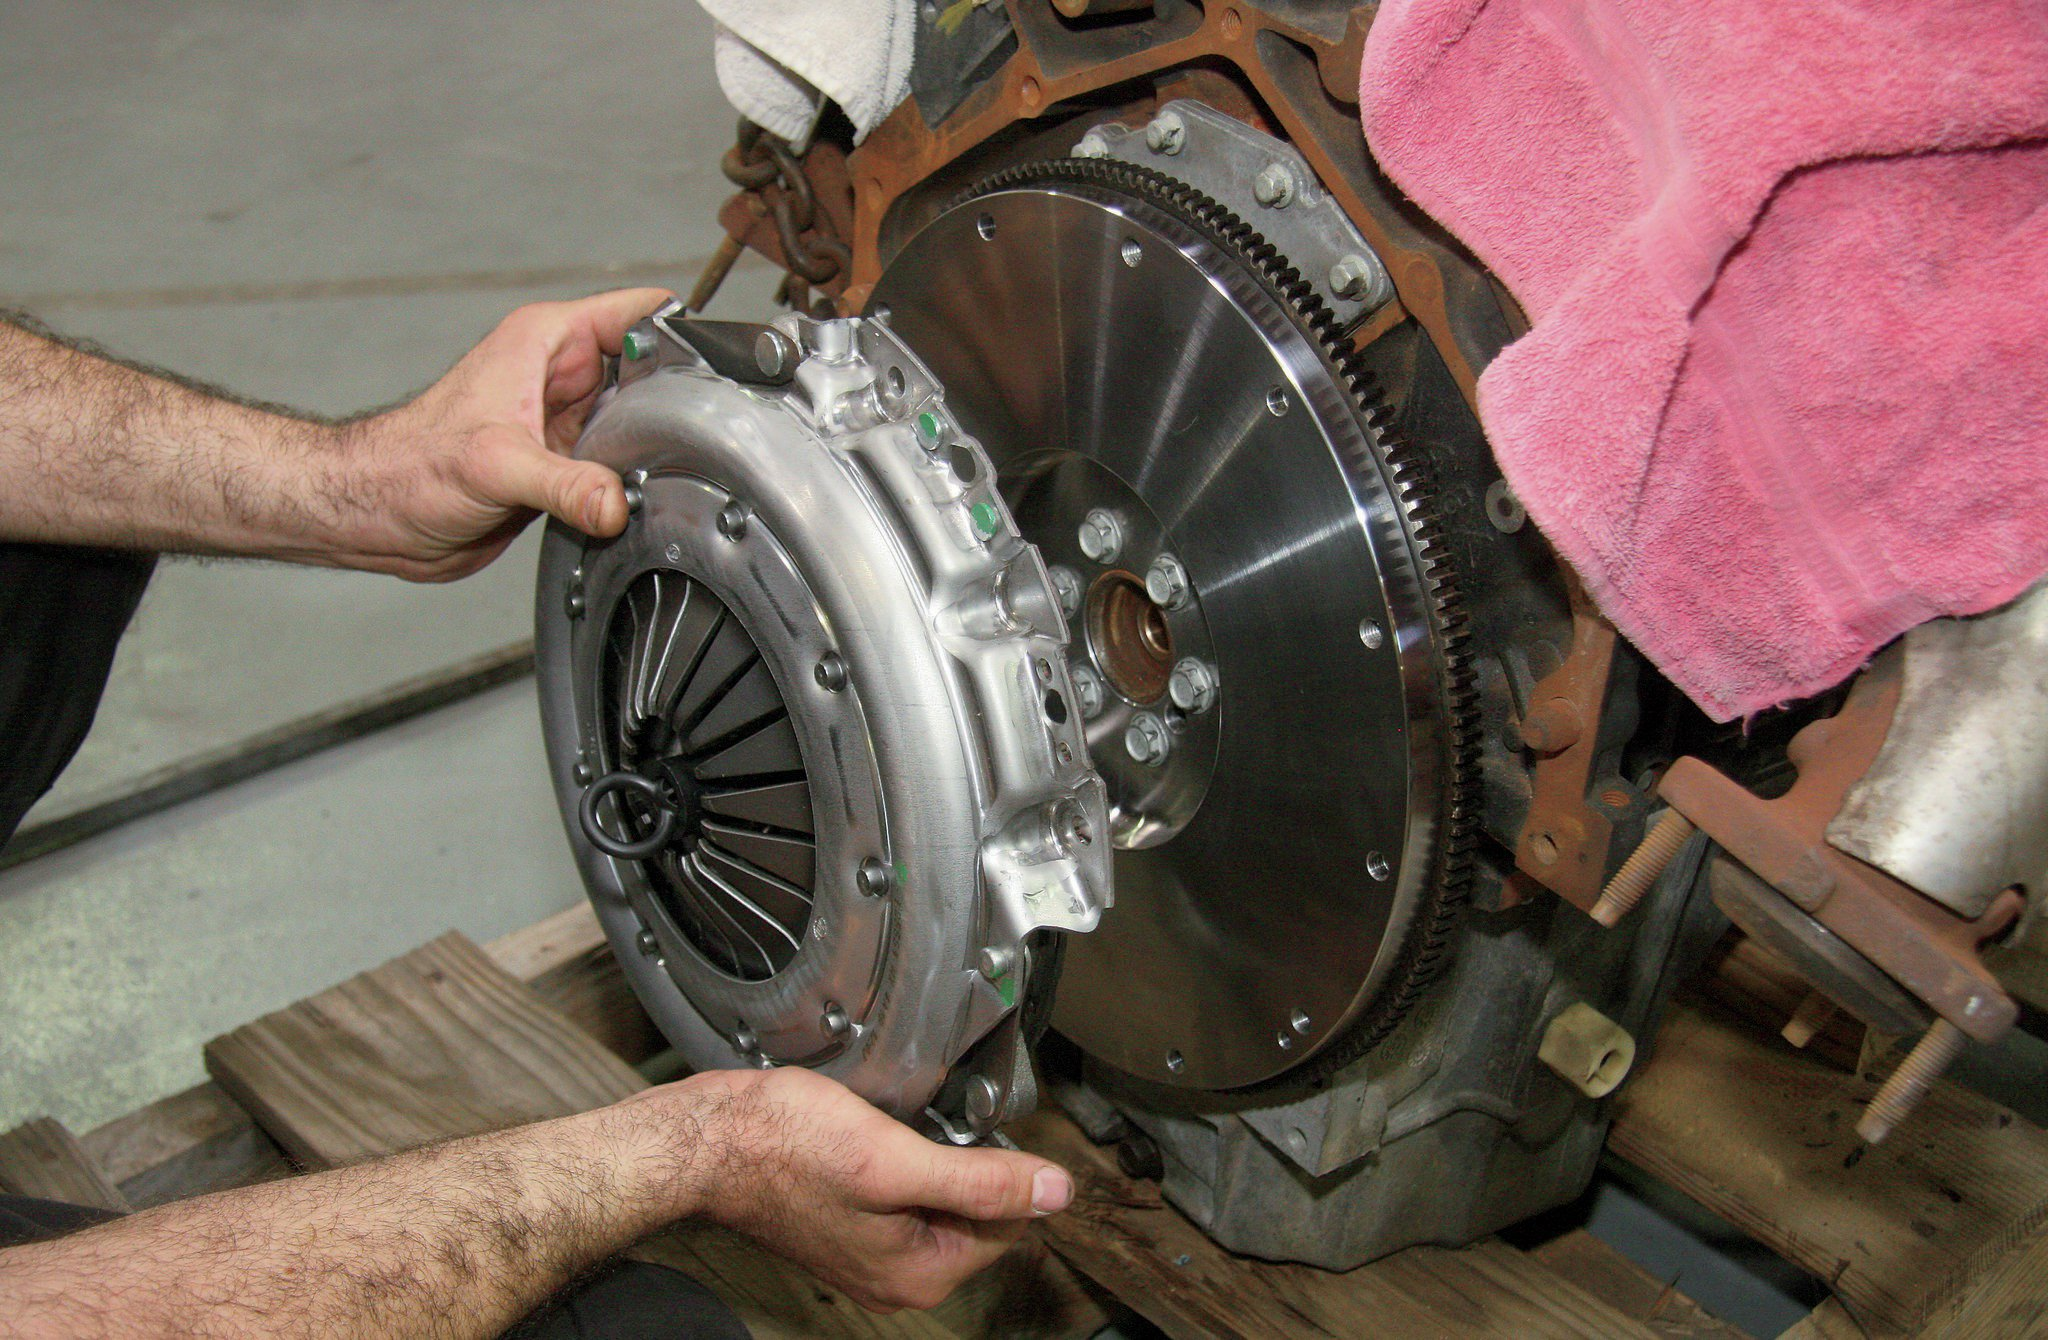 The donor engine was originally connected to an automatic transmission. The flexplate was removed, and a pressure plate and clutch assembly from the Advance Adapters kit was aligned and bolted to the rear of the engine.